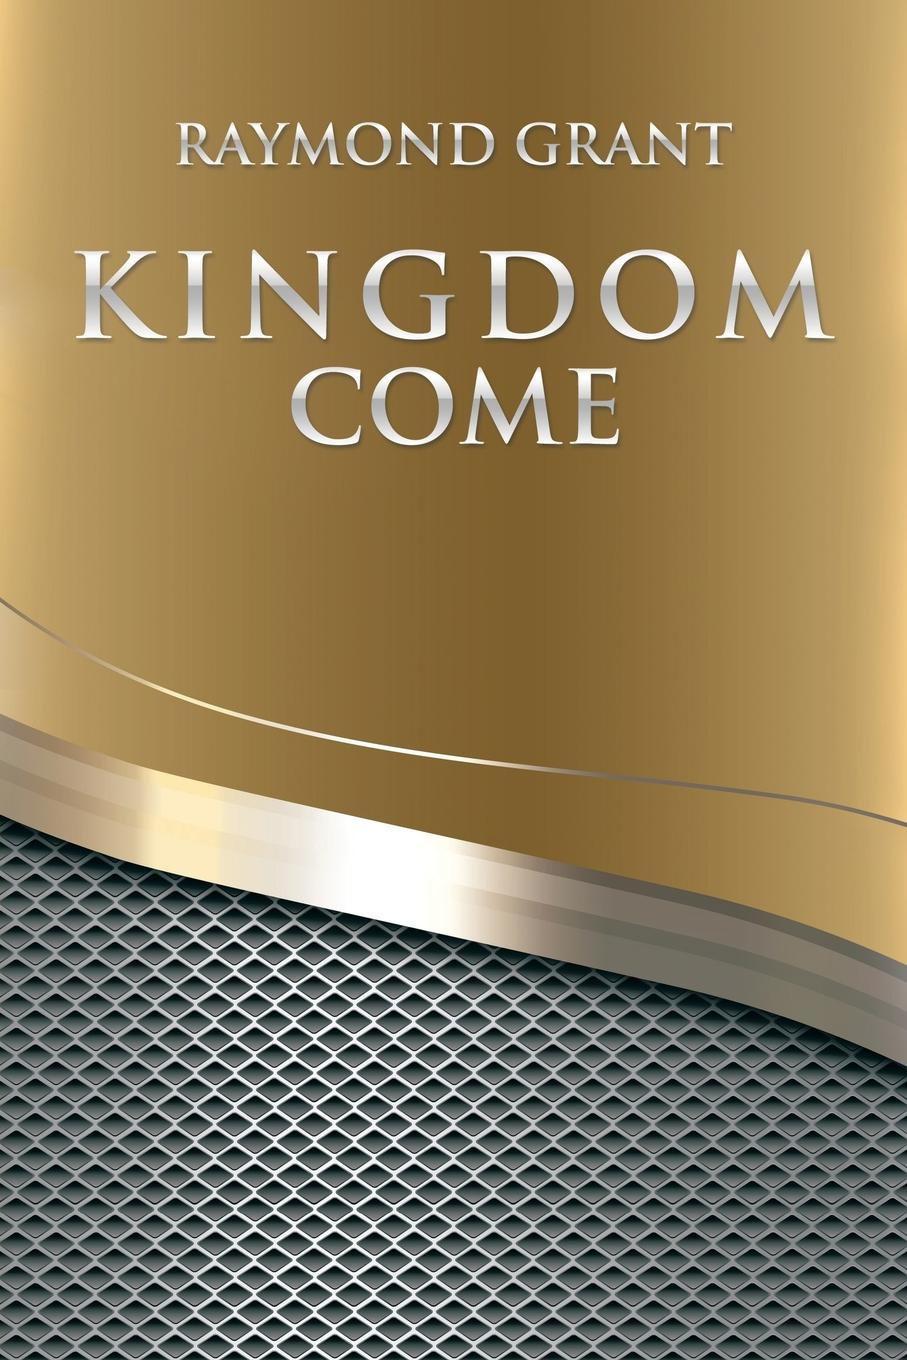 Raymond Grant Kingdom Come then we come to the end